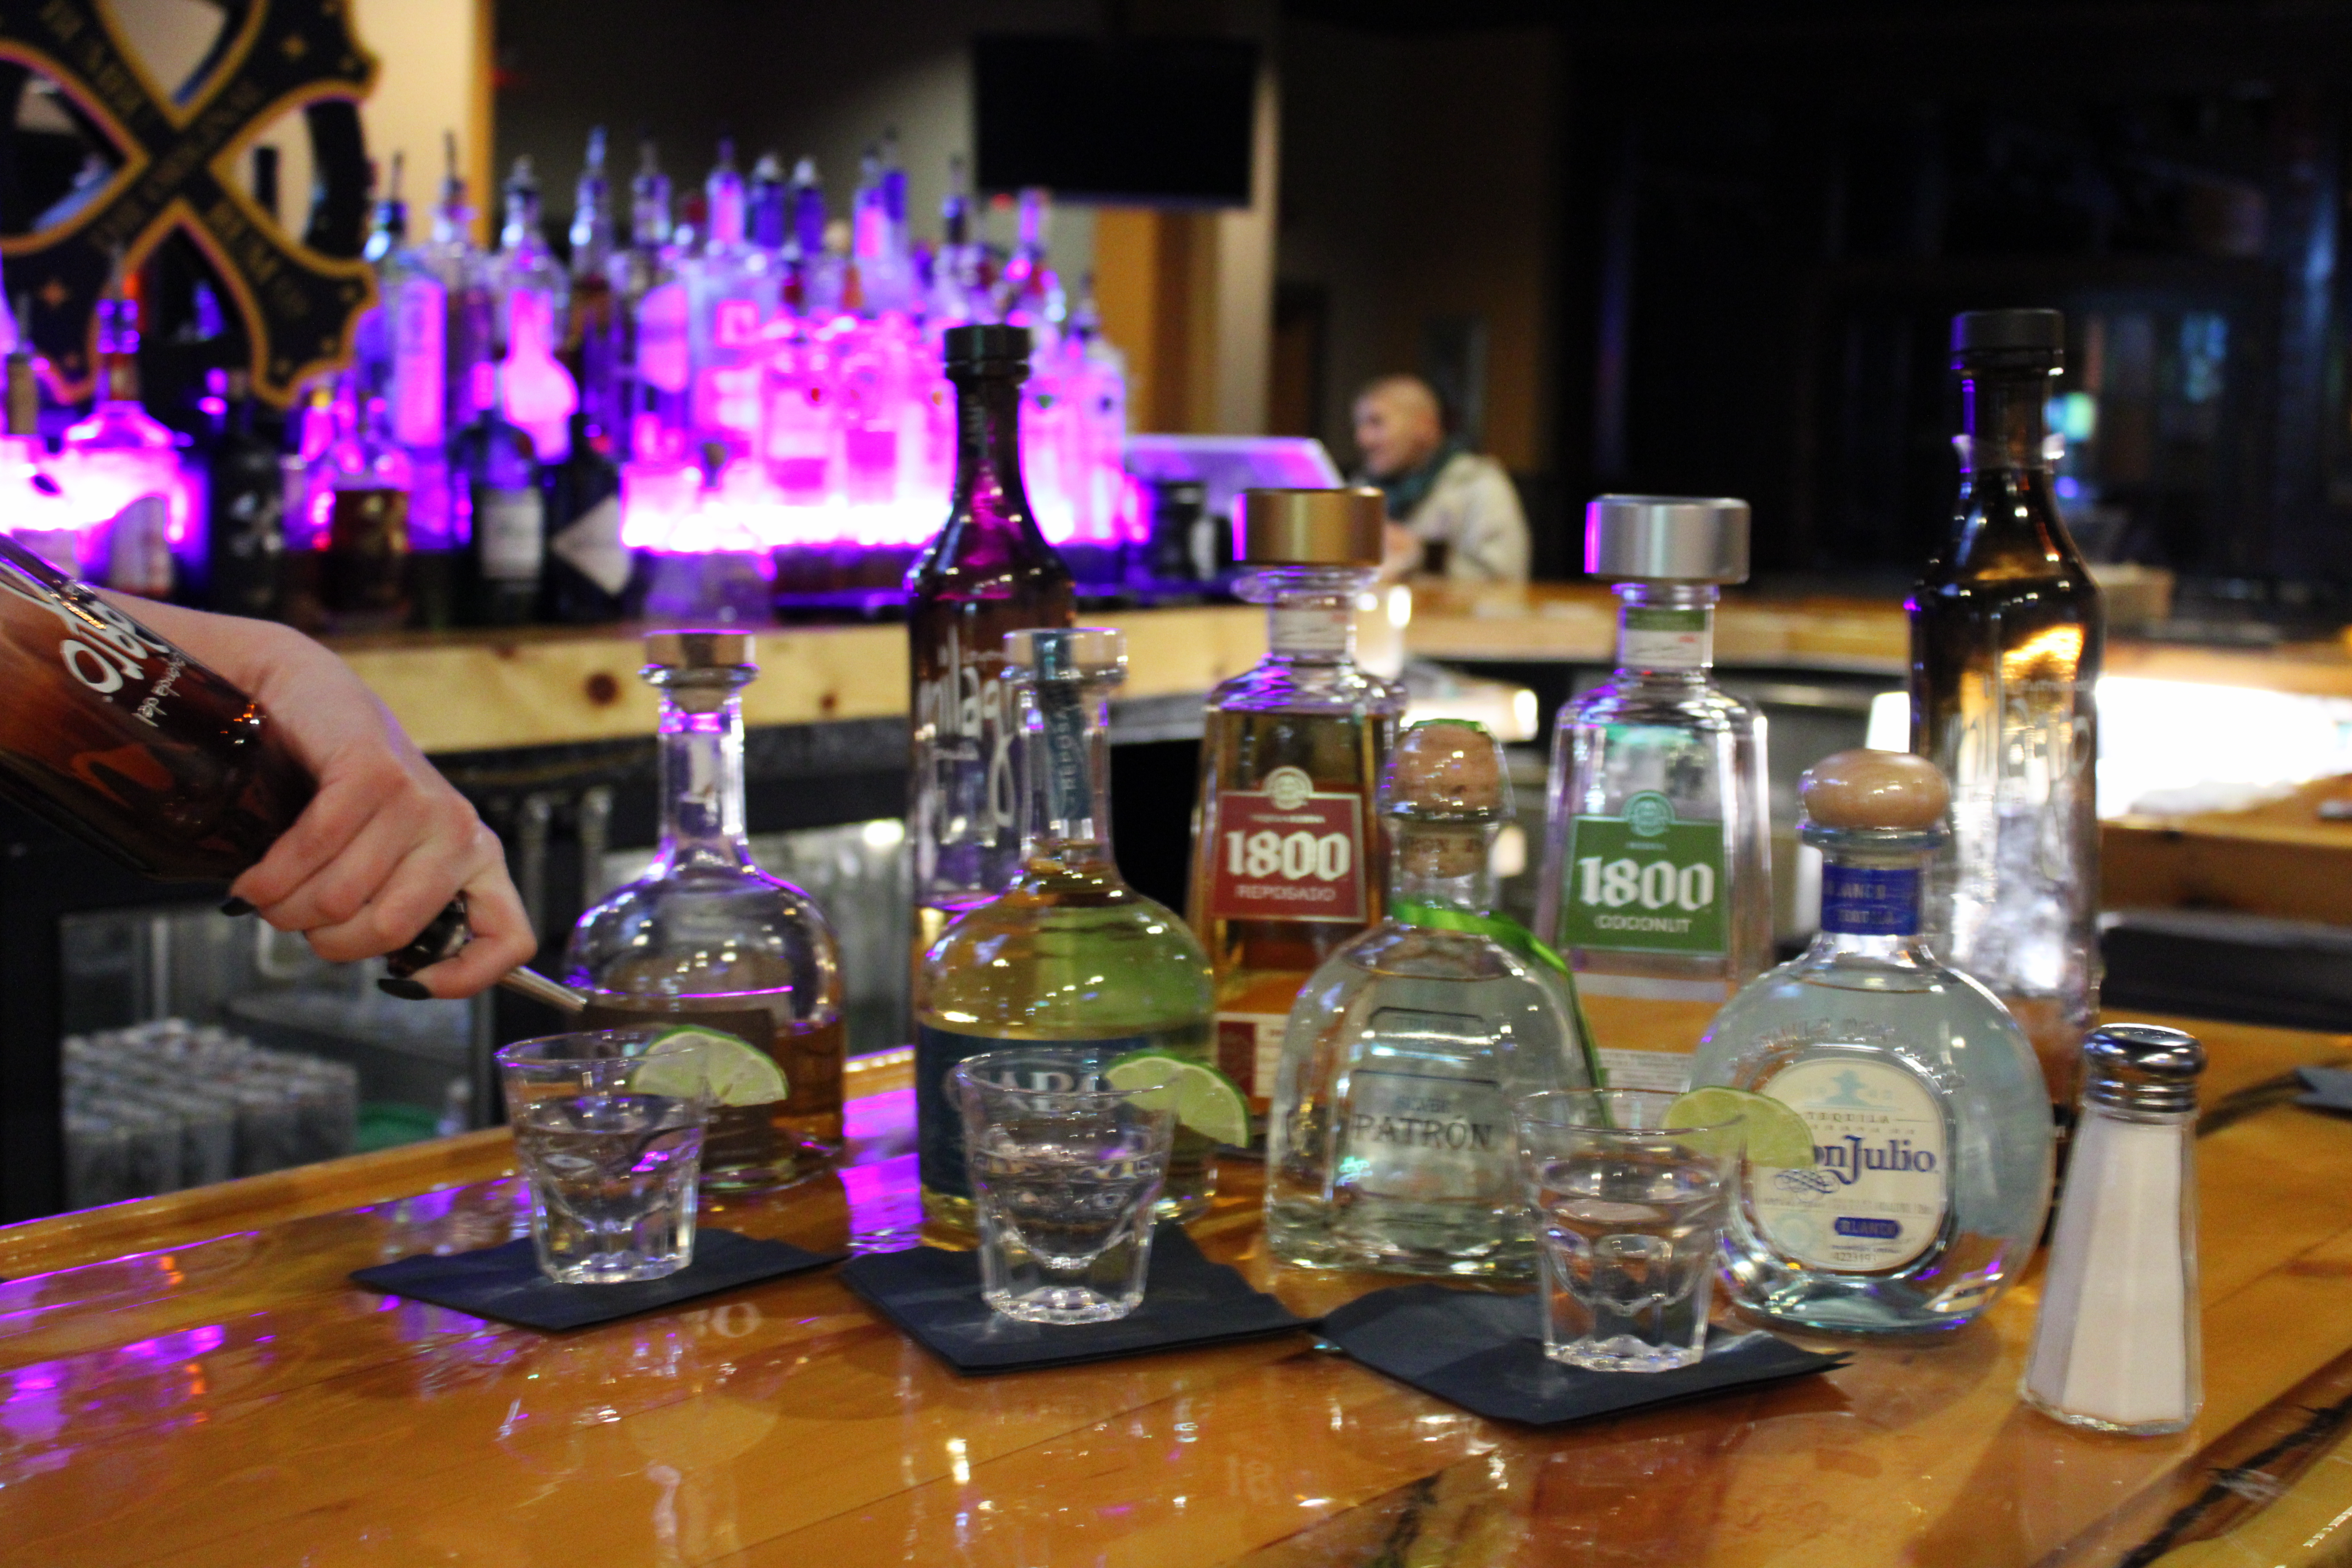 Smokin'_Flame_Tequila_collection